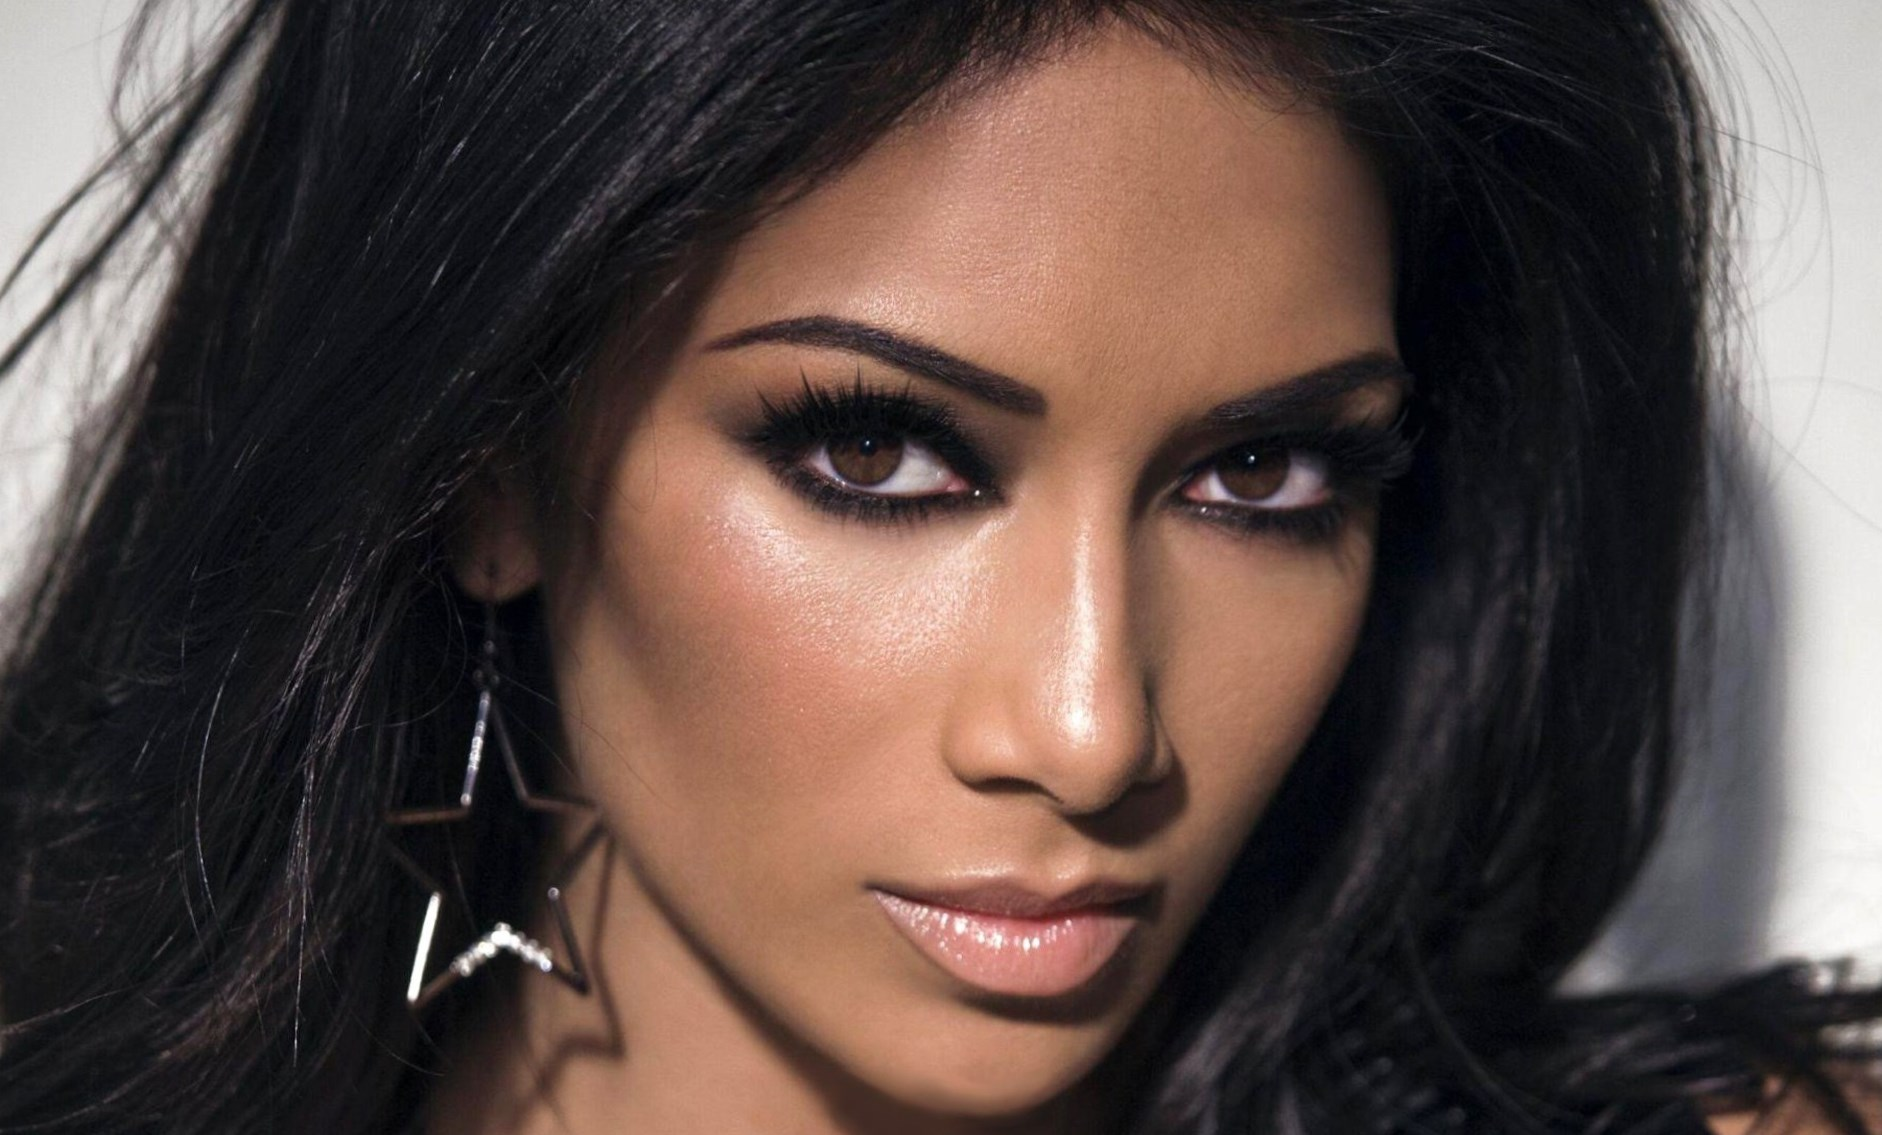 Nikole Sherzinger - Height, Weight, Age